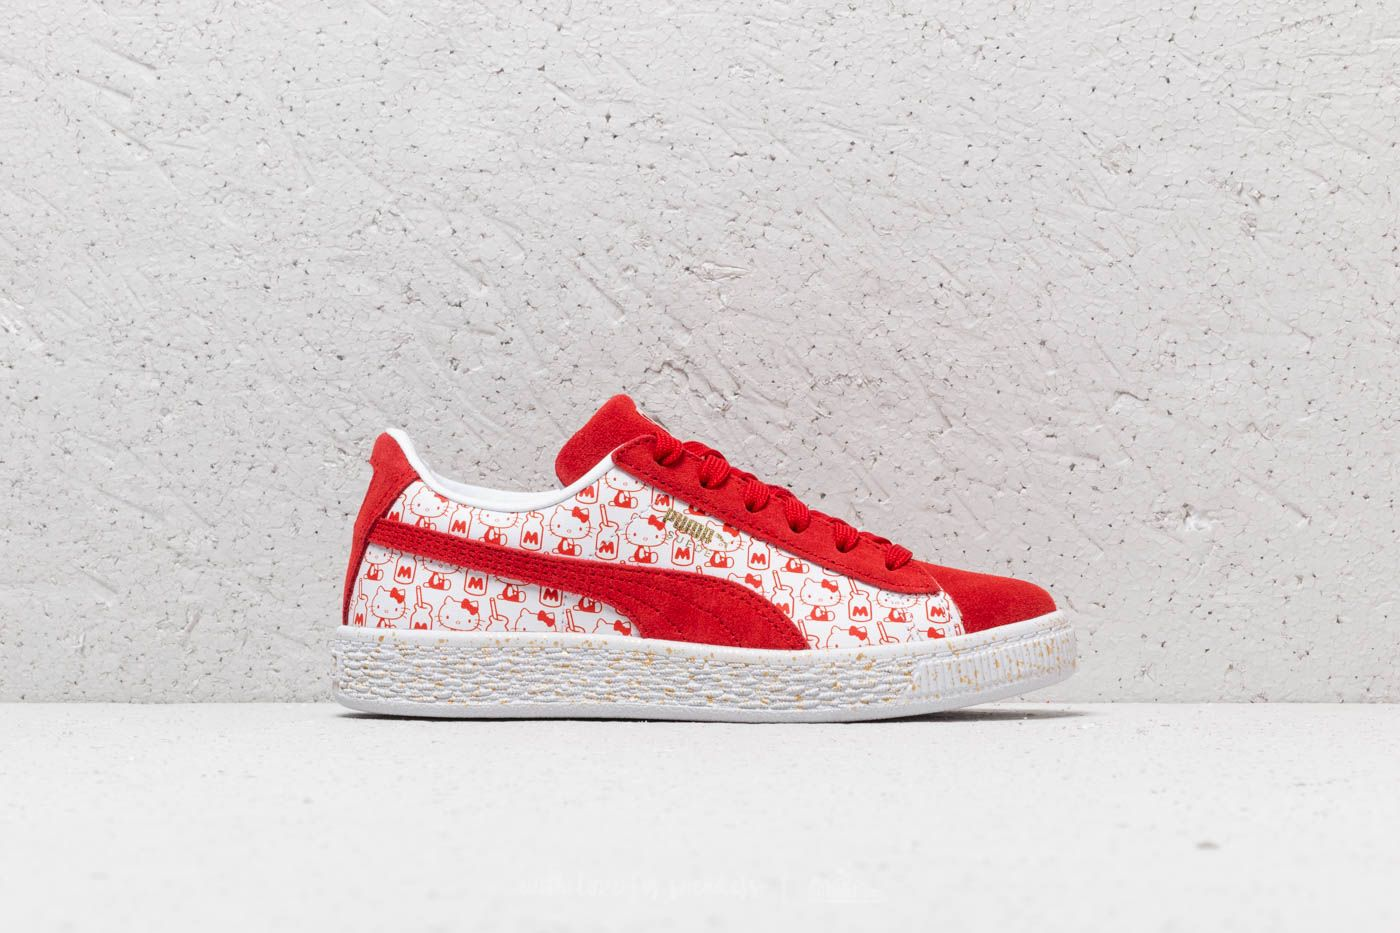 Puma Suede Classic x Hello Kitty PS Bright Red-Bright Red at a great price 5365d67a4